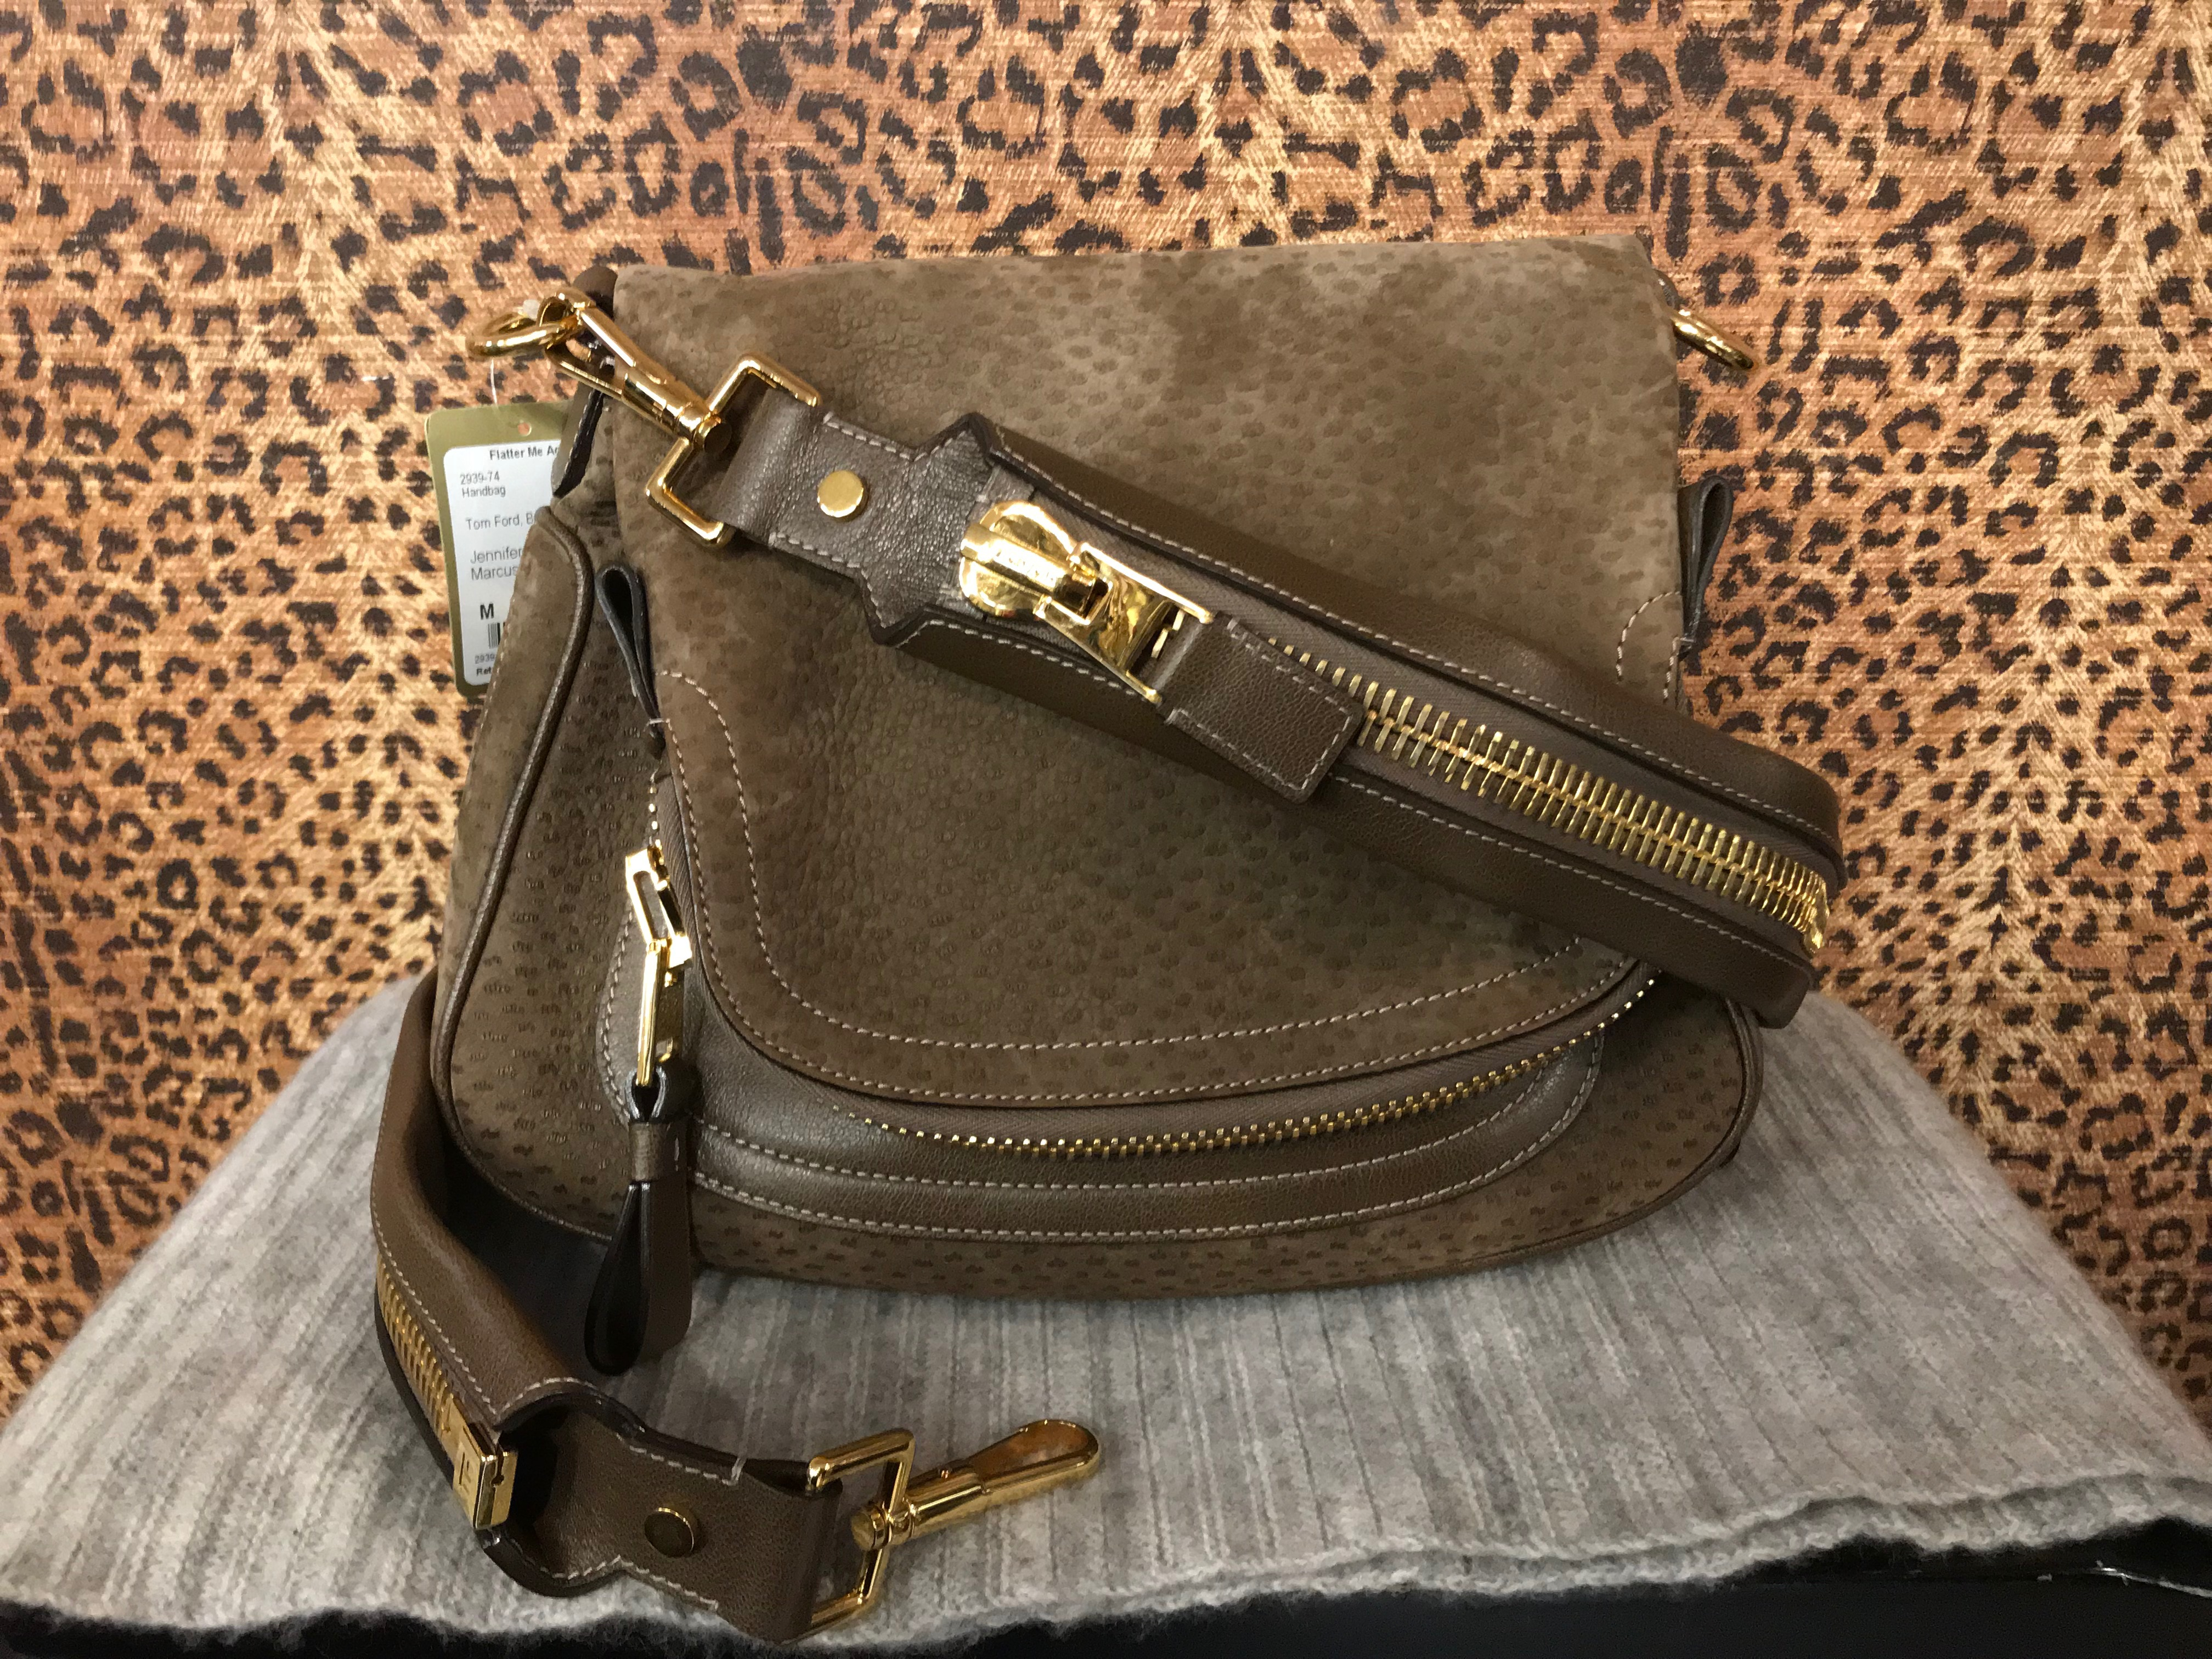 Tom Ford~ Brown, Suede, Jennifer Purses, Handbags Price: $1008.36